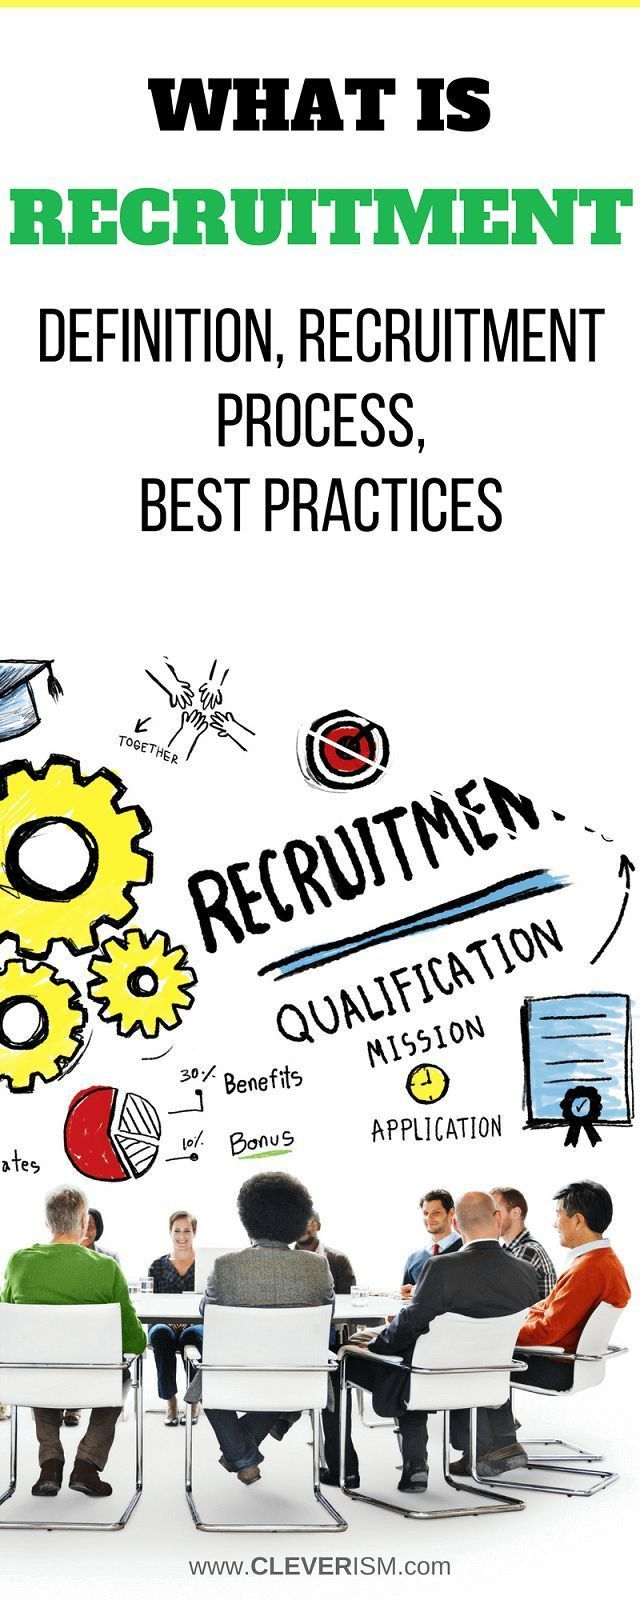 What Is Recruitment Definition Recruitment Process Best Practices Recruitment Marketing Employee Recruitment Cv Writing Service